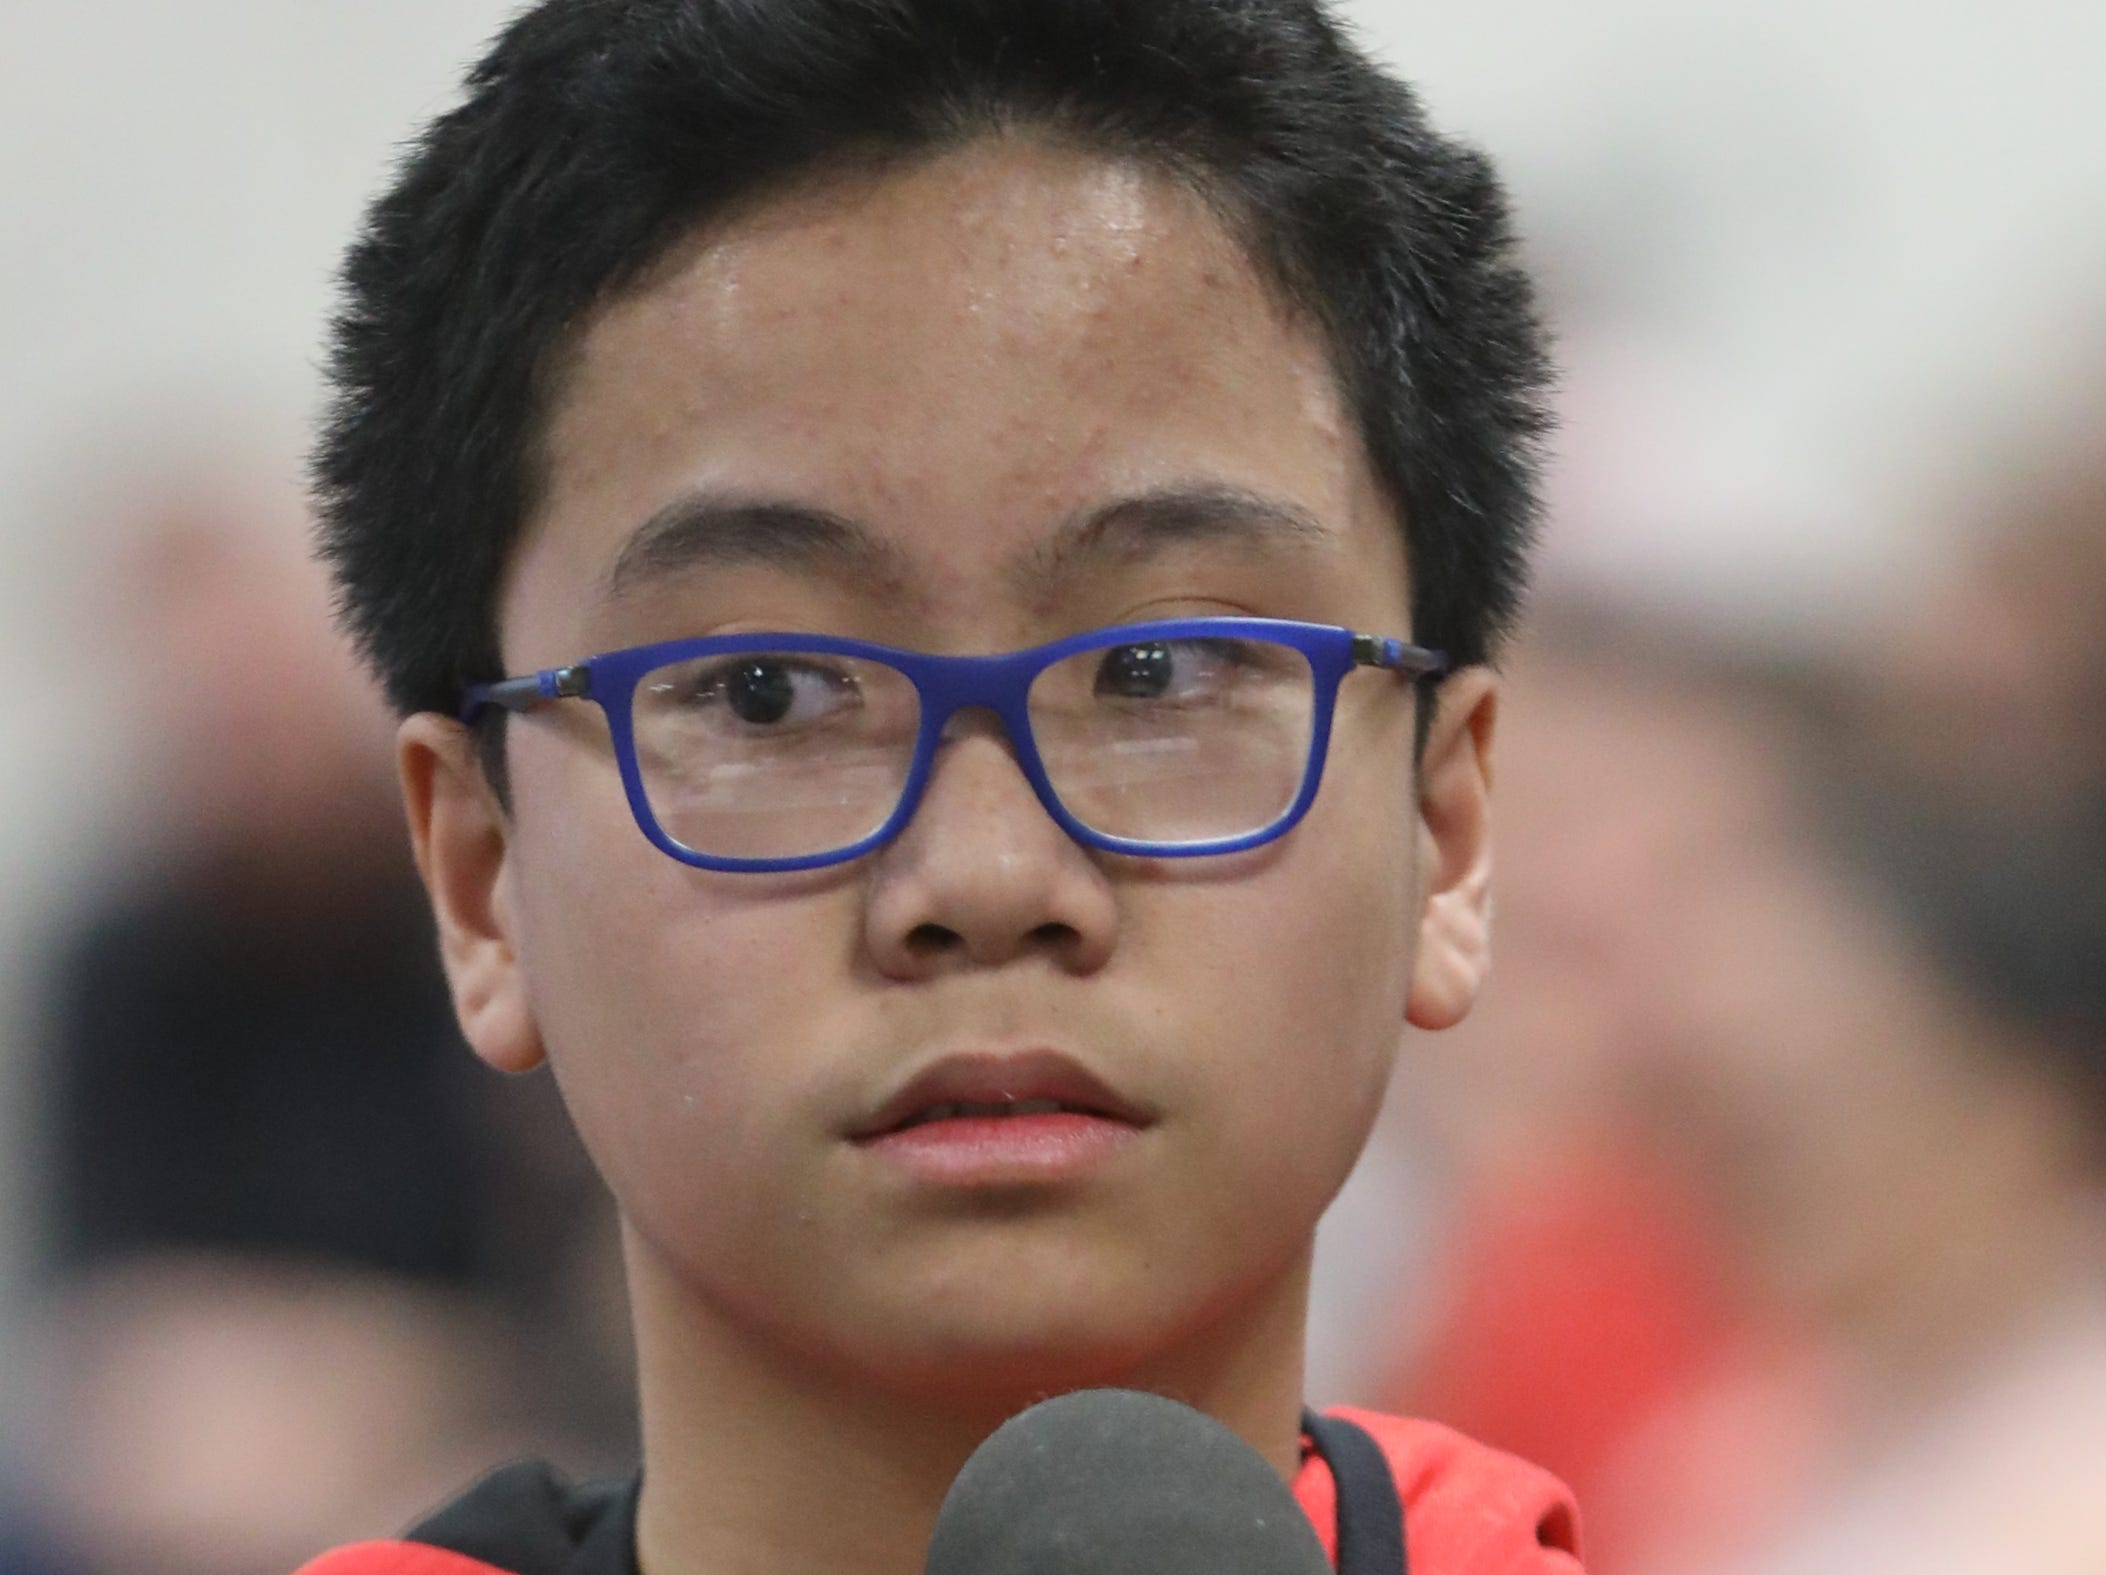 Alessandro Gallardo, of Fort Lee, competes in the first round of the 2019 North Jersey Spelling Bee, in Paramus. Thursday, March 14, 2019